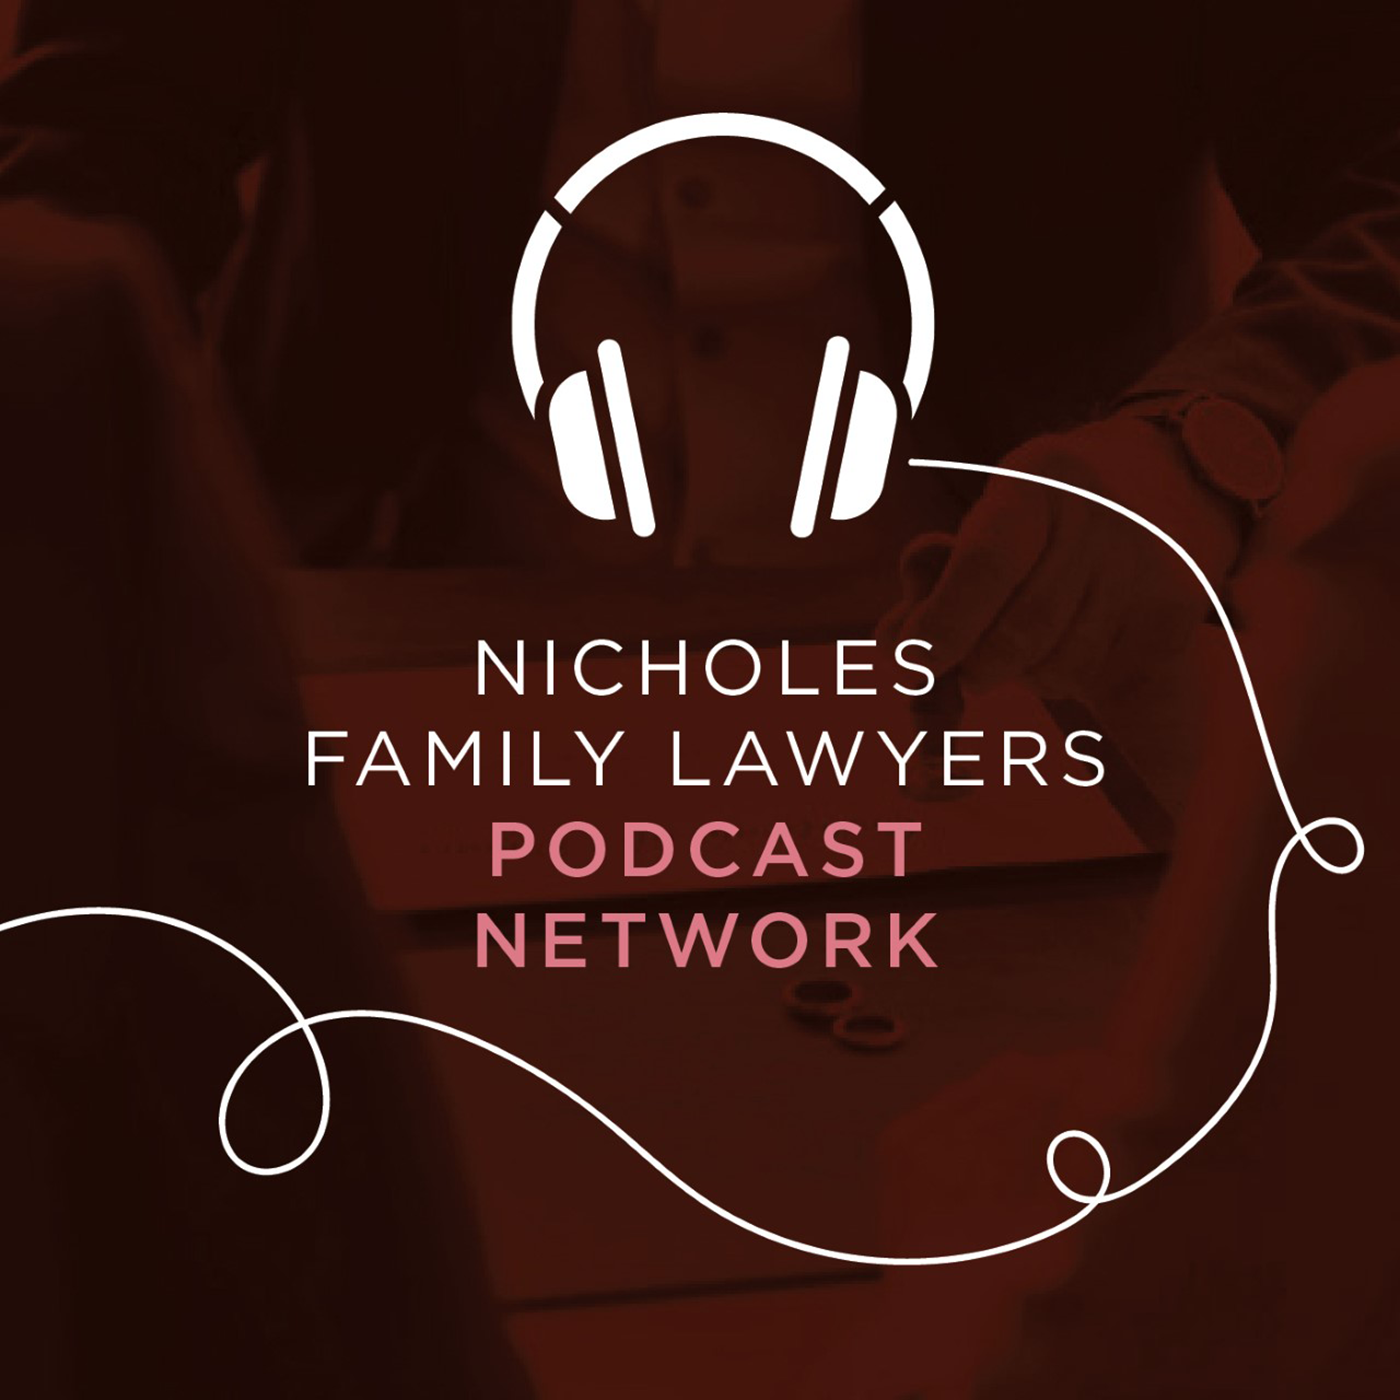 Nicholes Family Lawyers Podcast